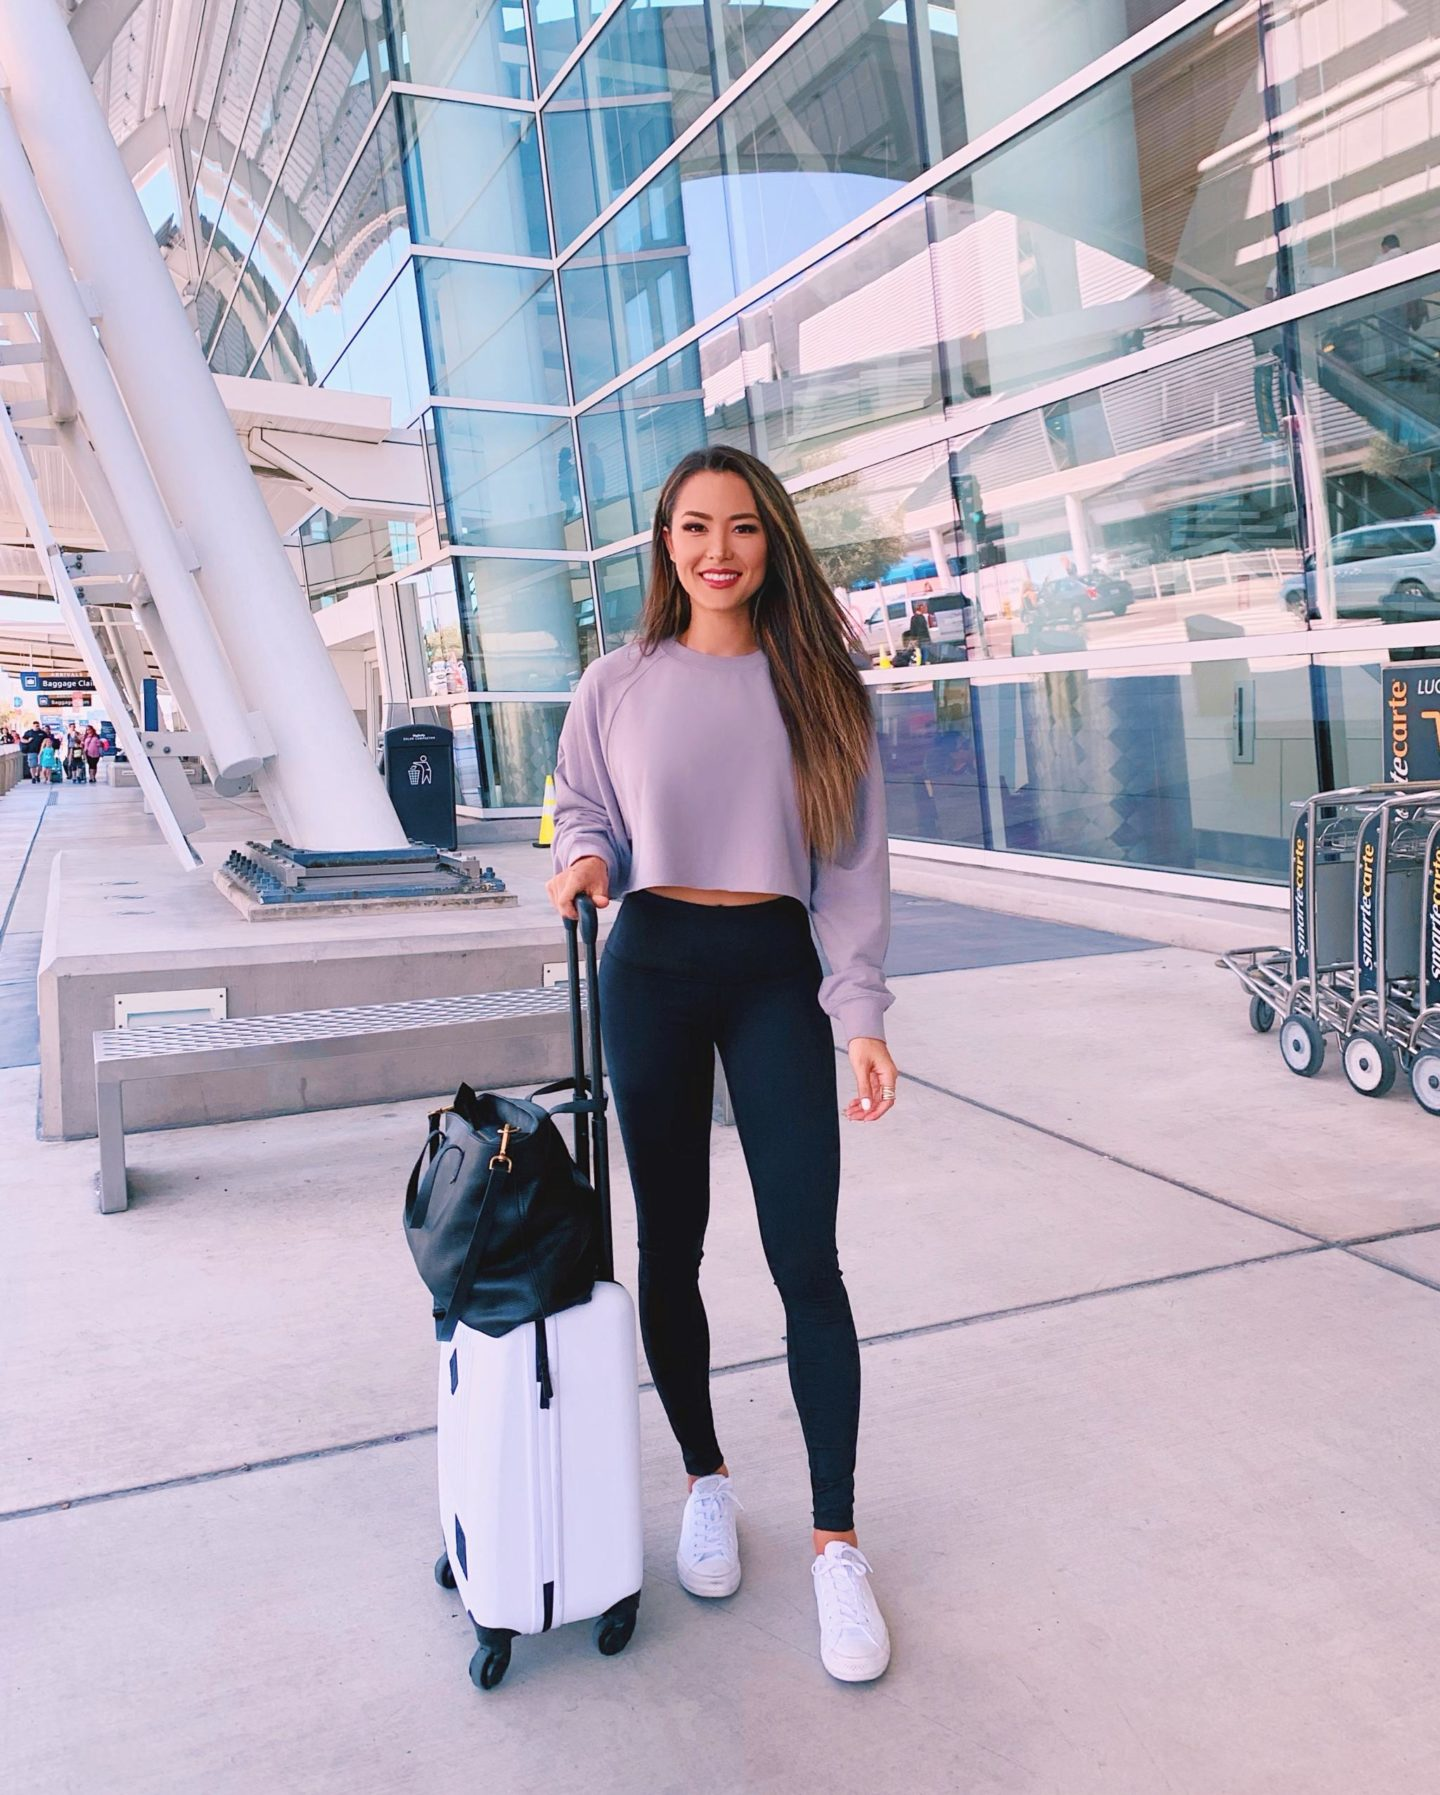 crop sweater casual airport outfit leggings sneakers